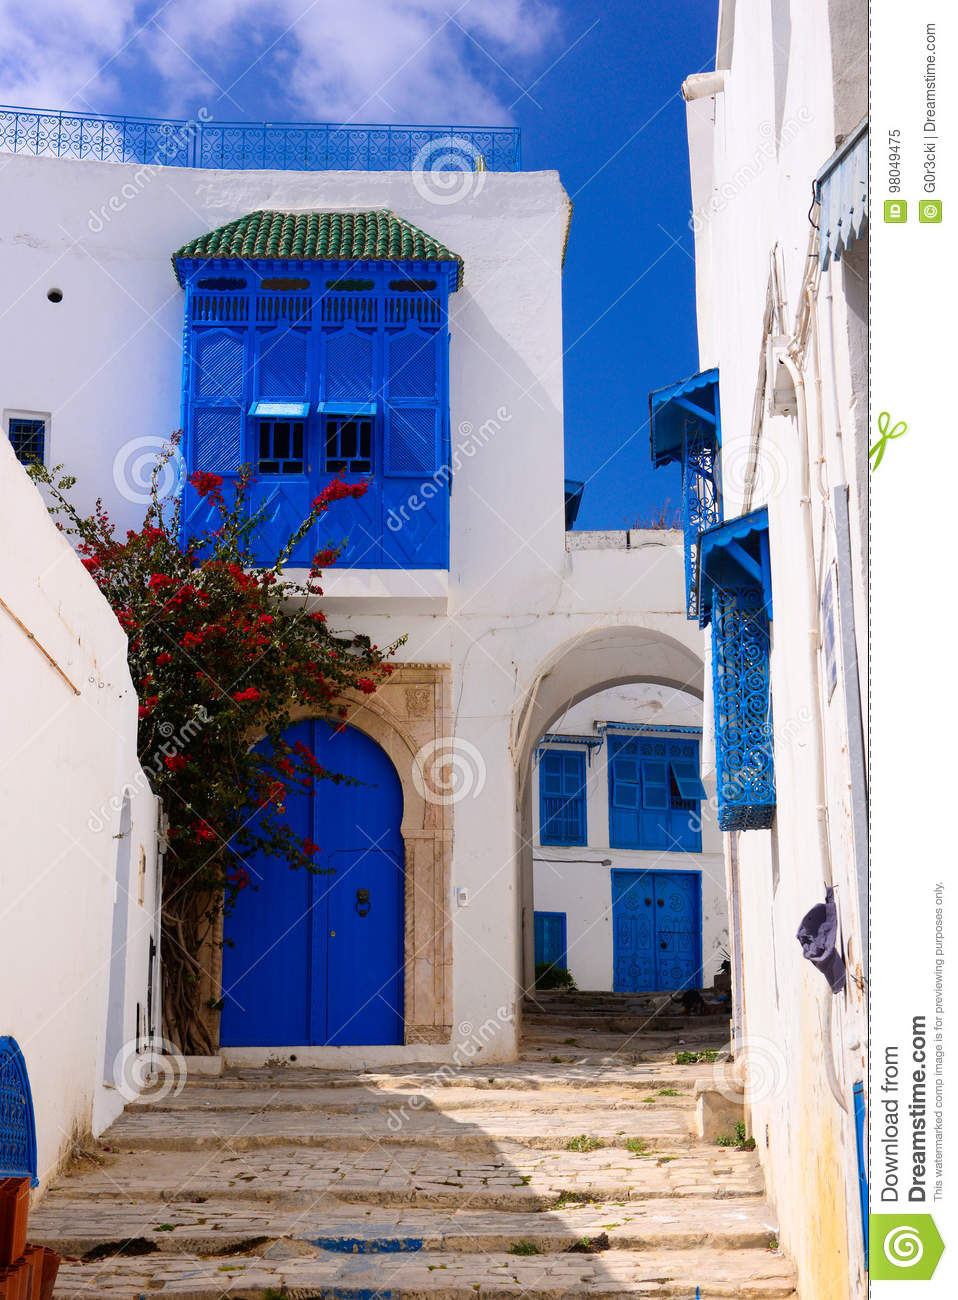 Arabic Alley, Traditional Tunisian Buildings, Blue Doors and Shutters - Sidi Bou Said